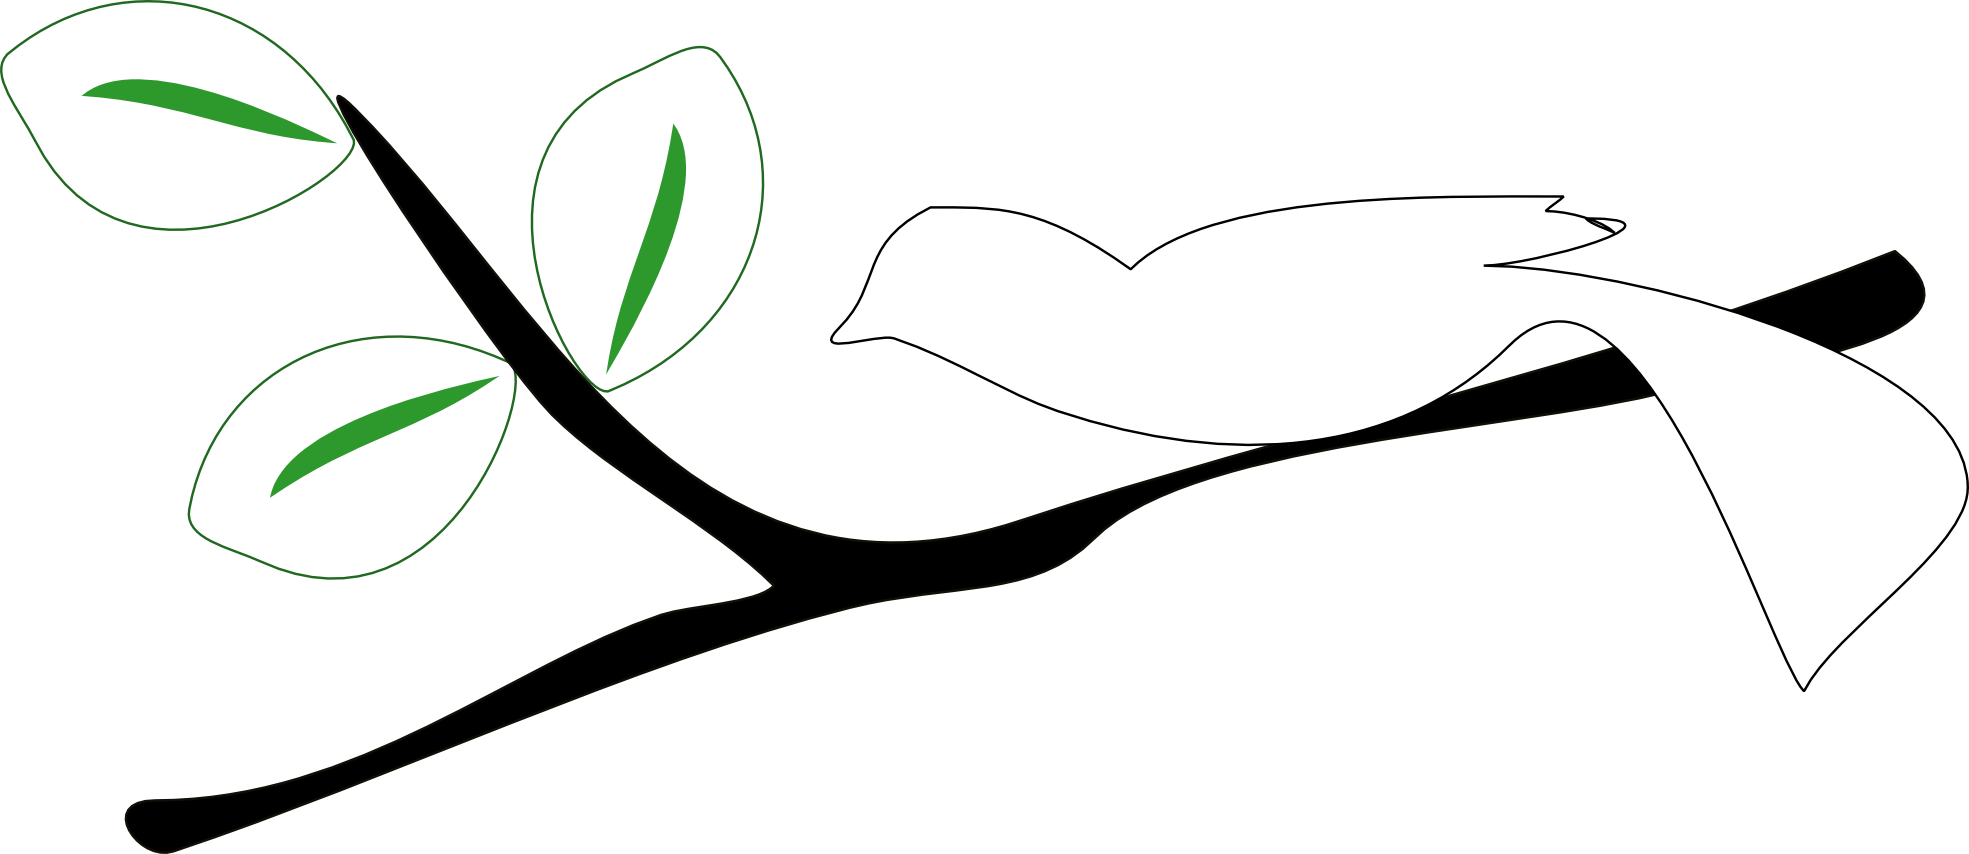 Free Images Of Tree Branches Download Free Clip Art Free